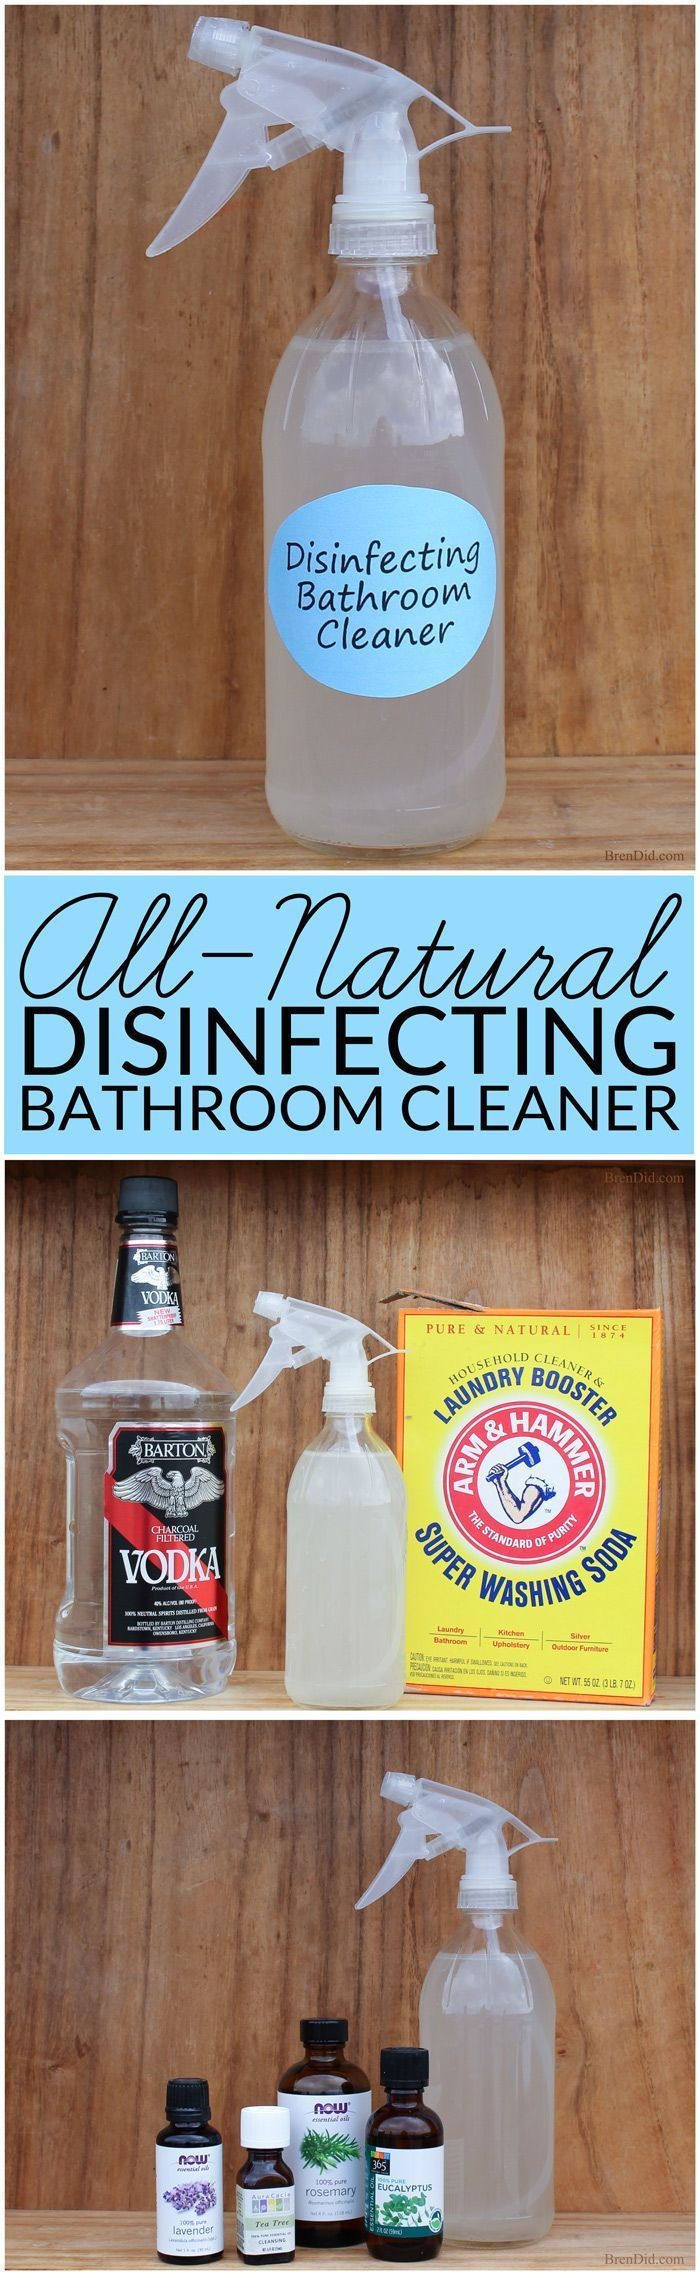 Natural Bathroom Disinfectant Cleaner Diy Cleaning